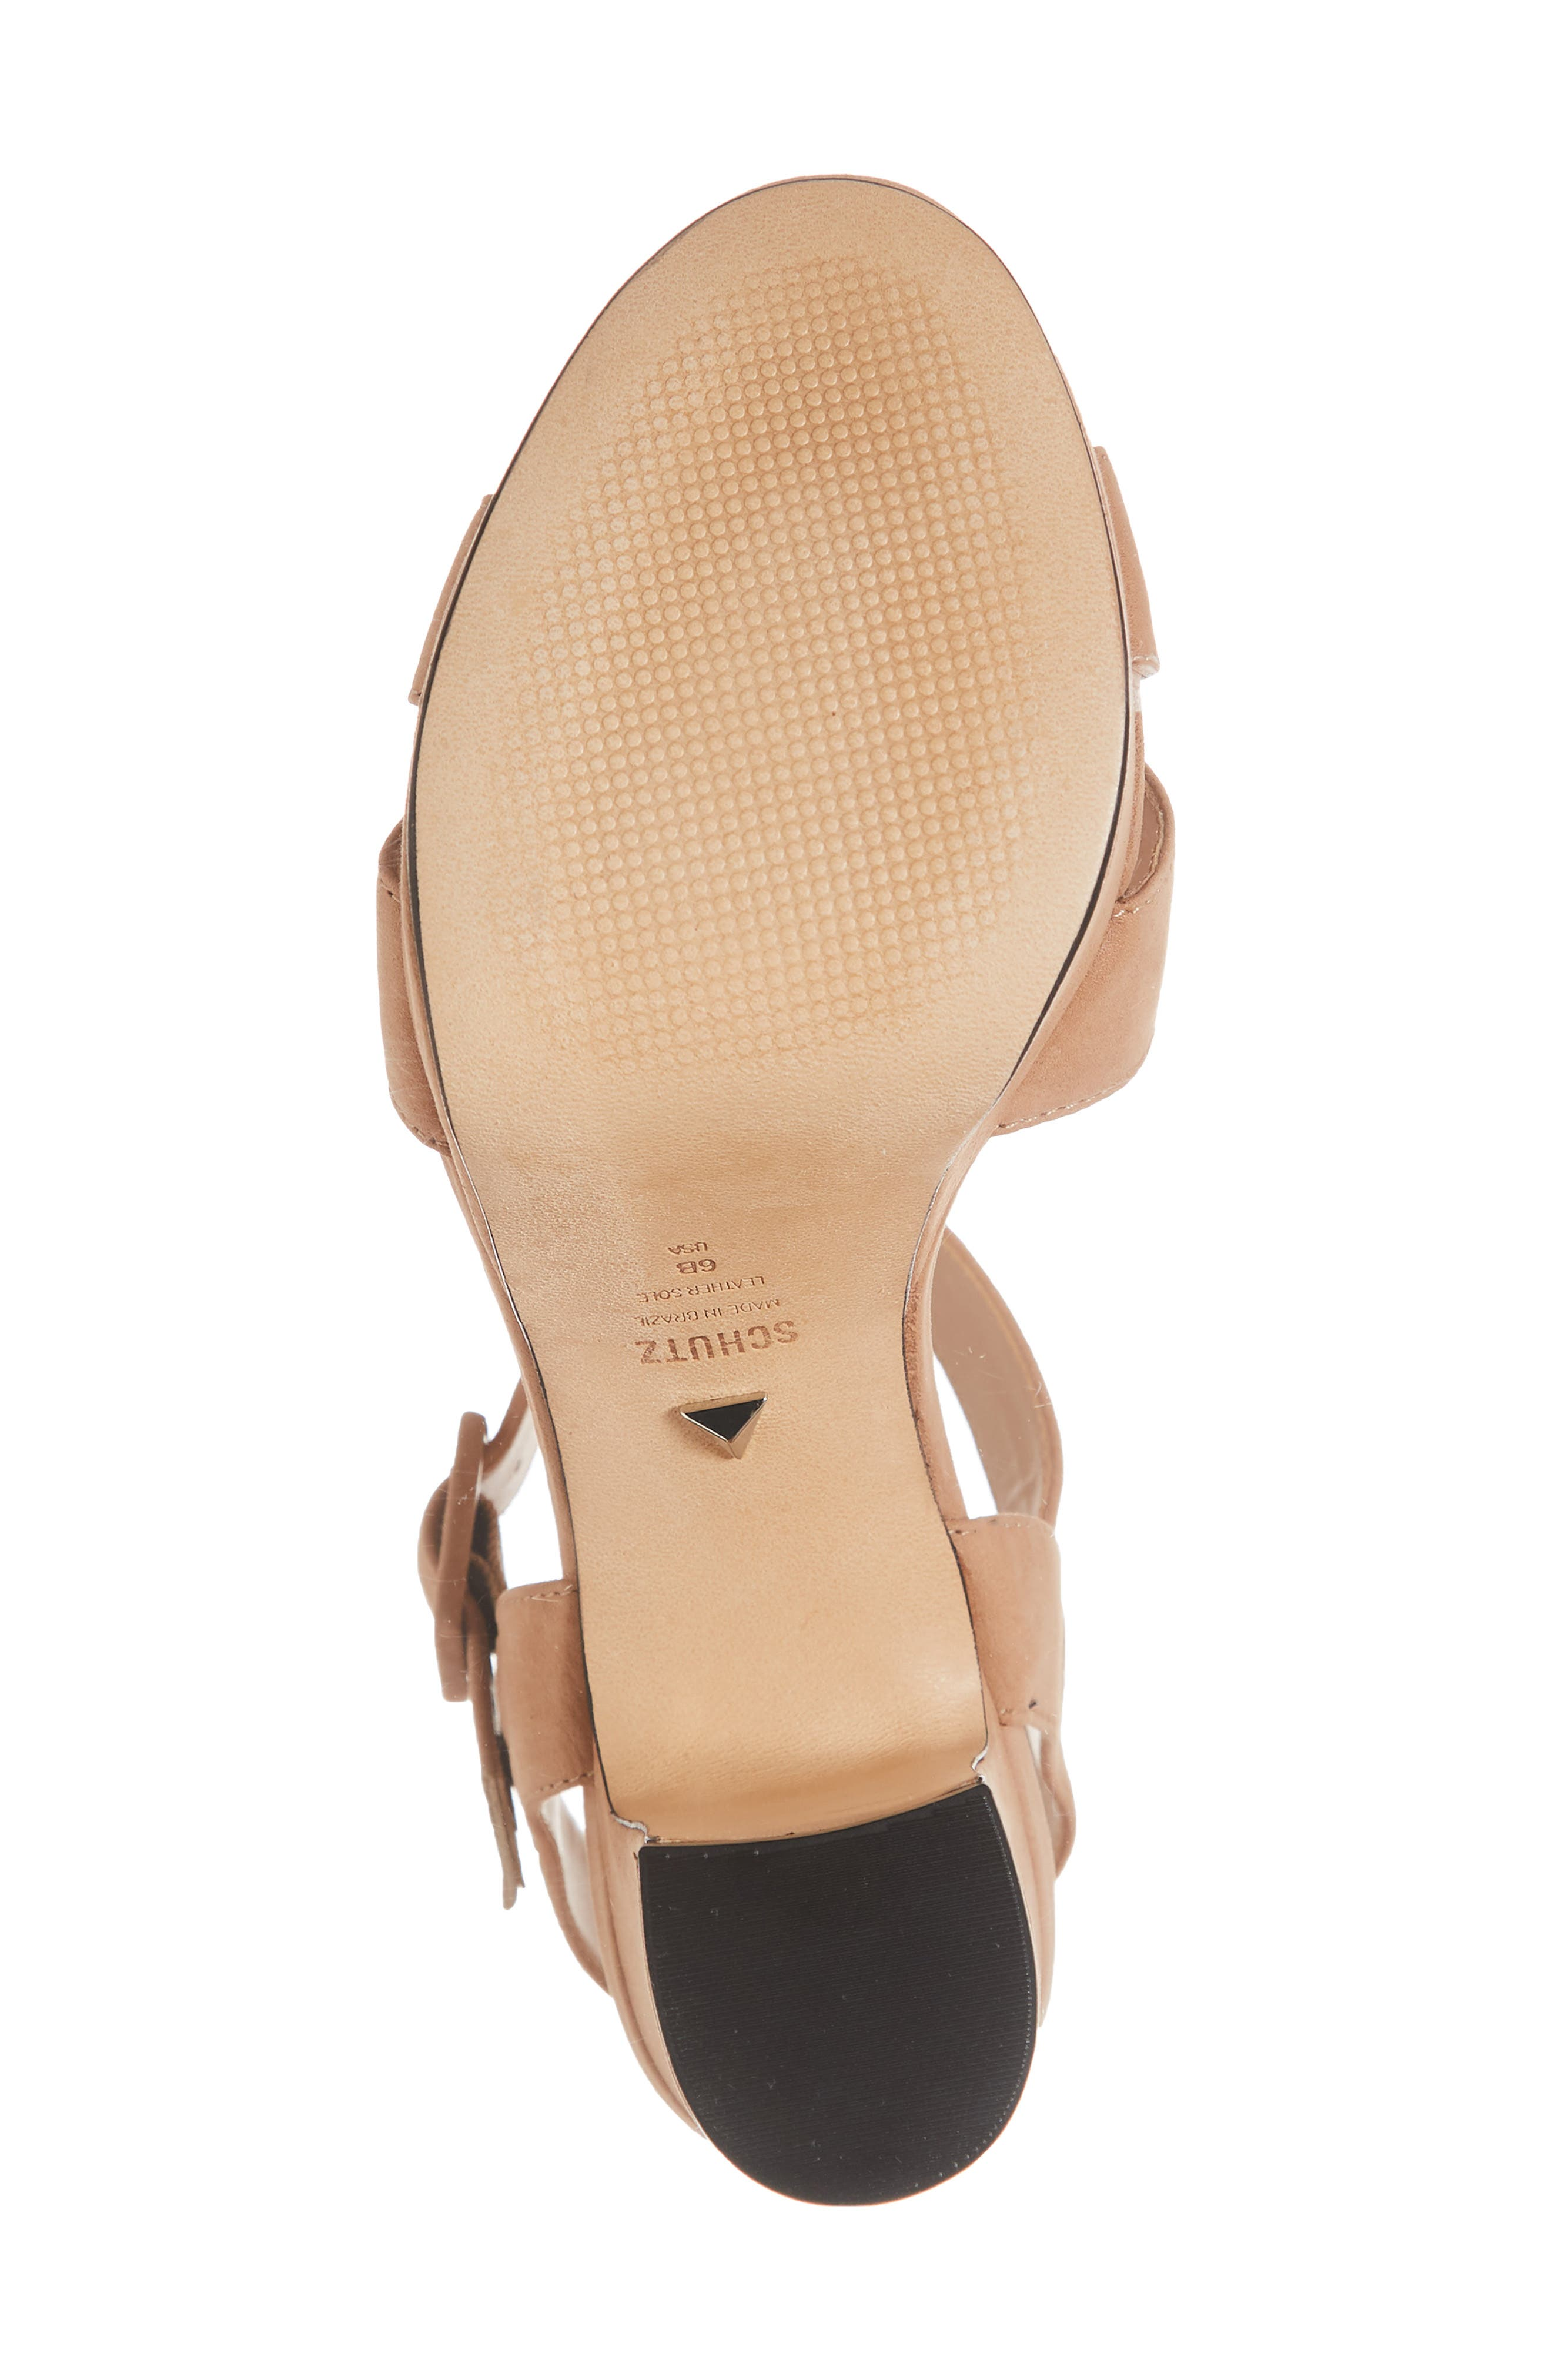 Tulia Sandal,                             Alternate thumbnail 6, color,                             HONEY BEIGE NUBUCK